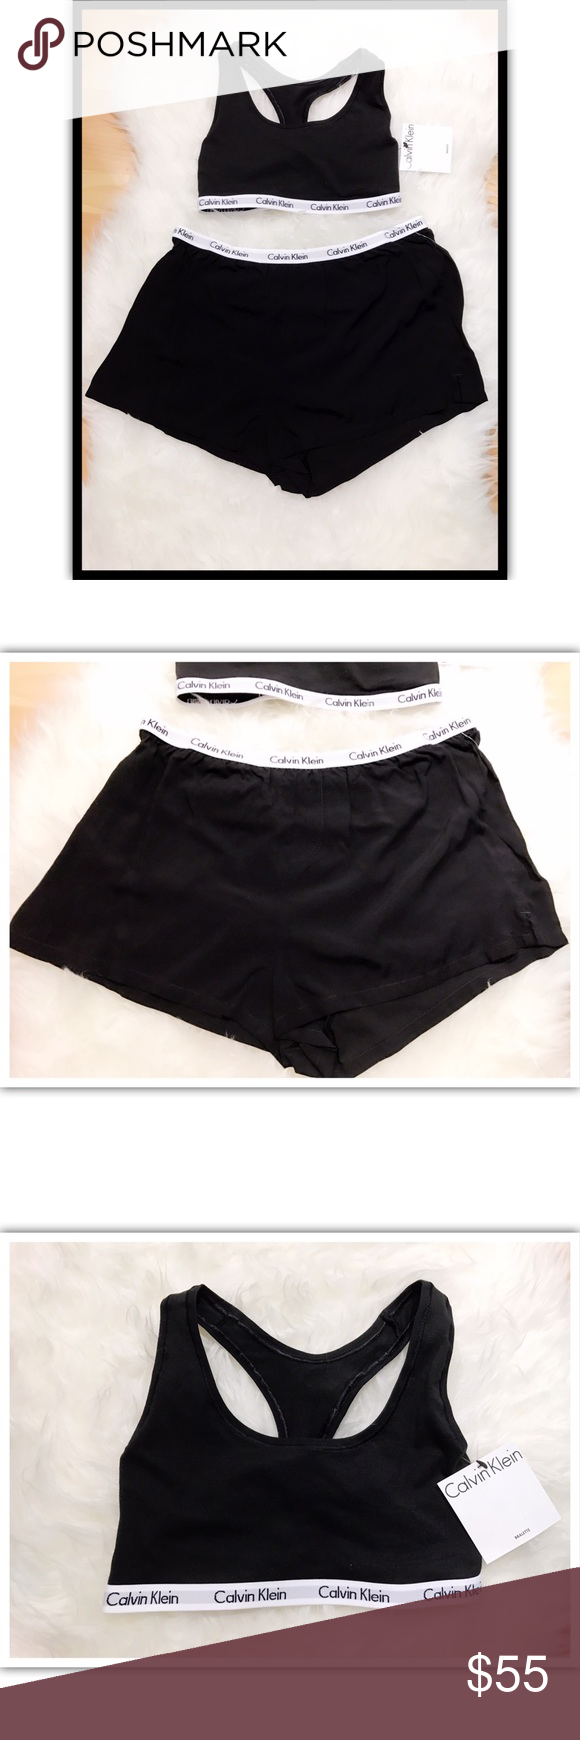 New authentic Calvin Klein pjs set top/short sz M They are finally here!! These are 💯%✔️ Authentic! Short fells silky and very soft and top is made of cotton, size is Small. And since they are authentic they run normal size. Set of top and short. Retail price $112. New with tags!! Calvin Klein Intimates & Sleepwear Pajamas